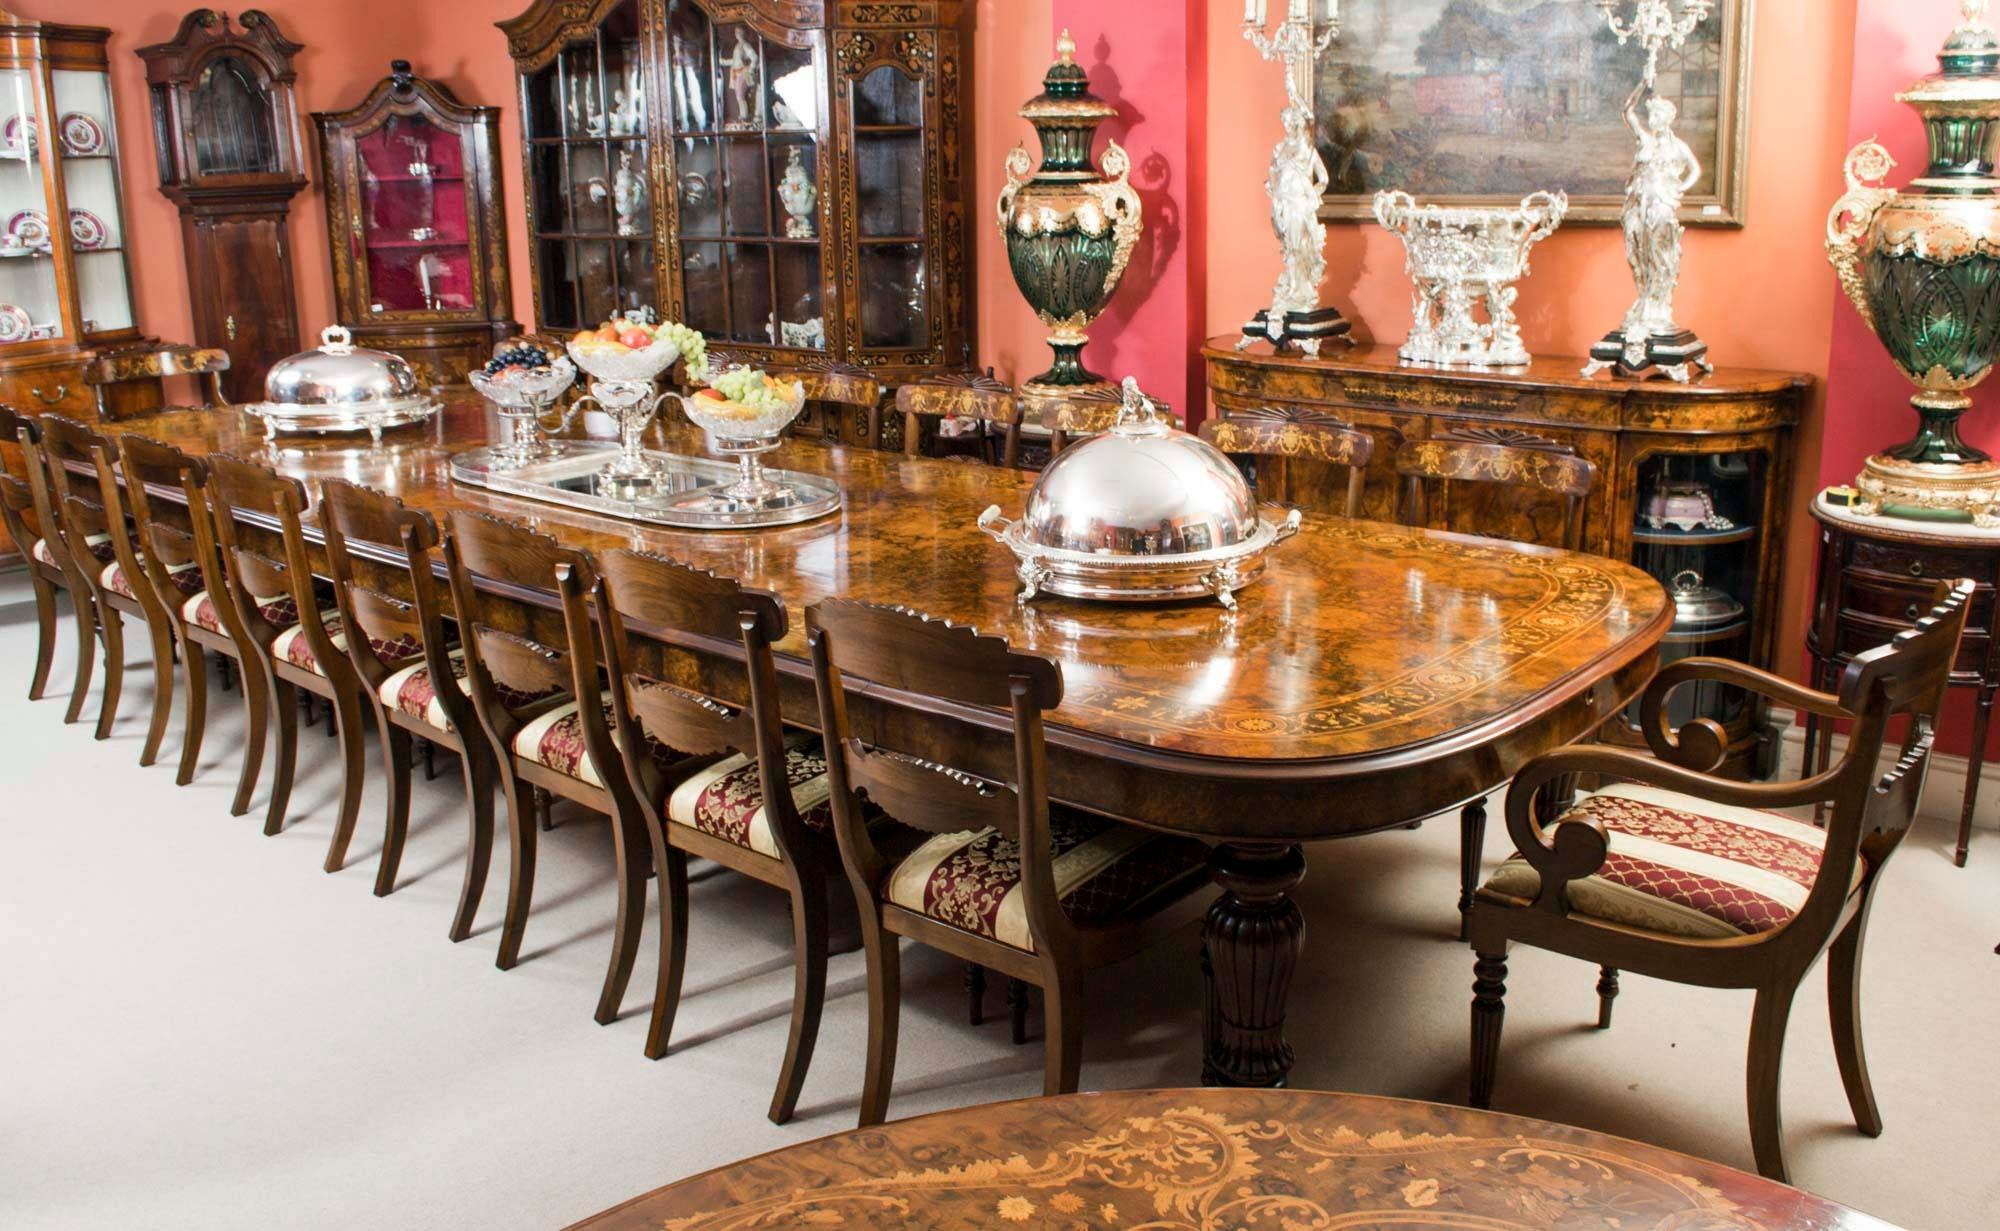 Ordinaire Huge Bespoke Handmade Marquetry Walnut Extending Dining Table 18 Chairs For  Sale At 1stdibs